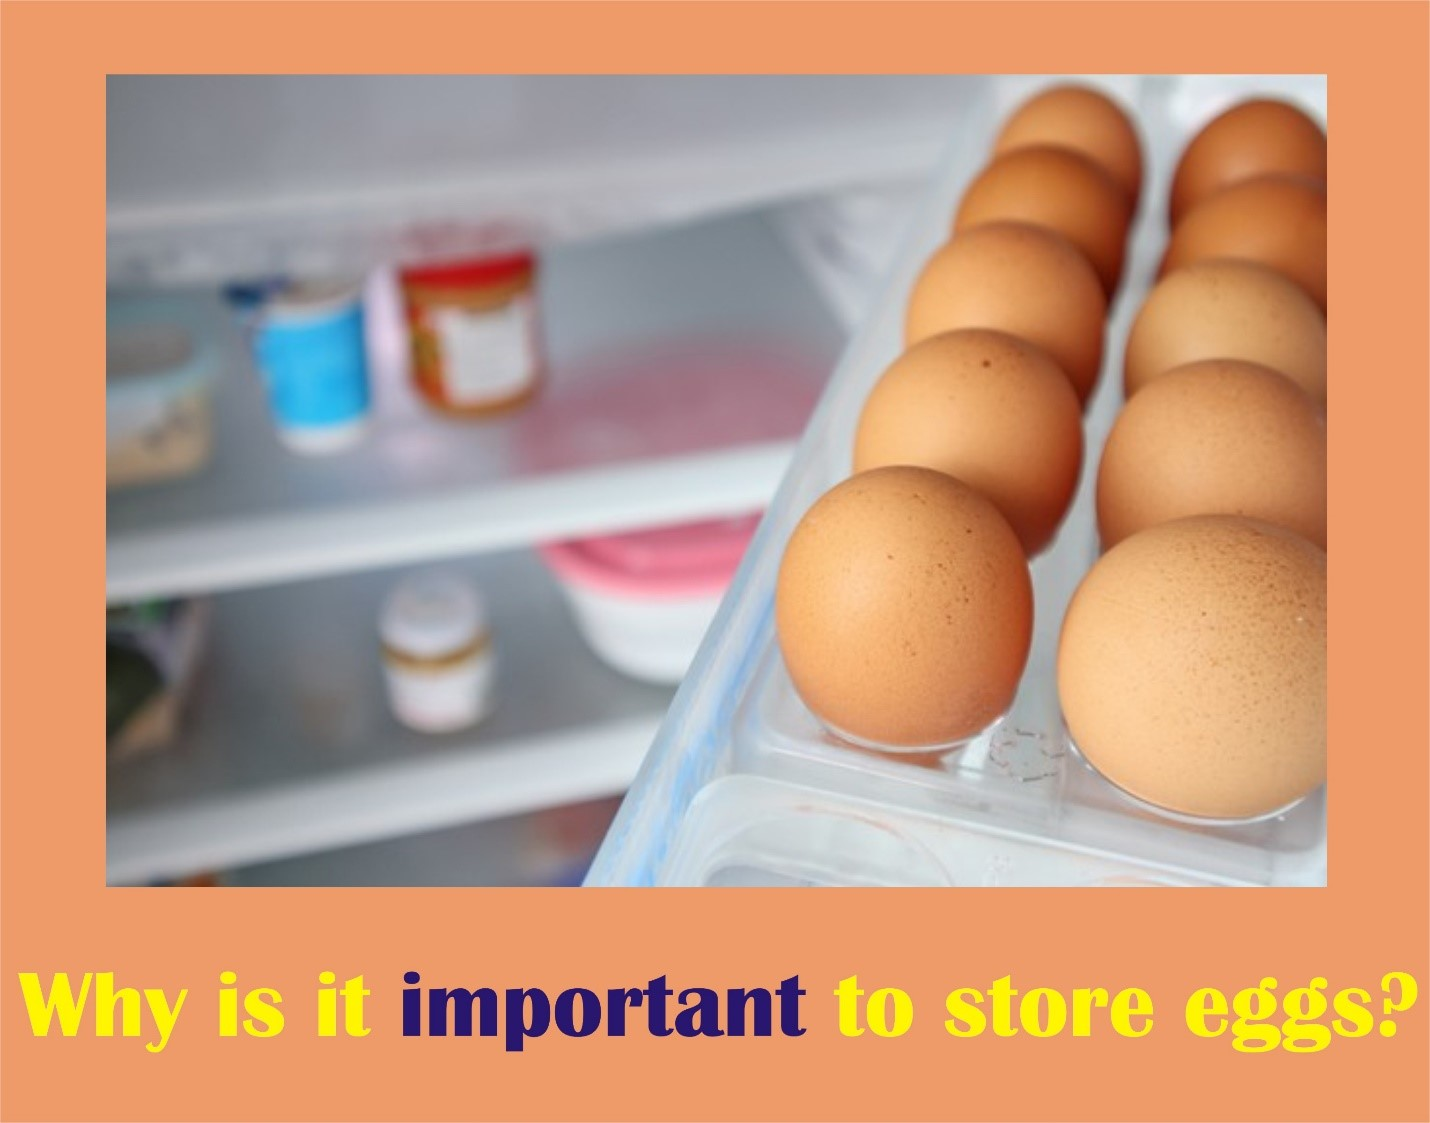 do hard boiled eggs need to be refrigerated